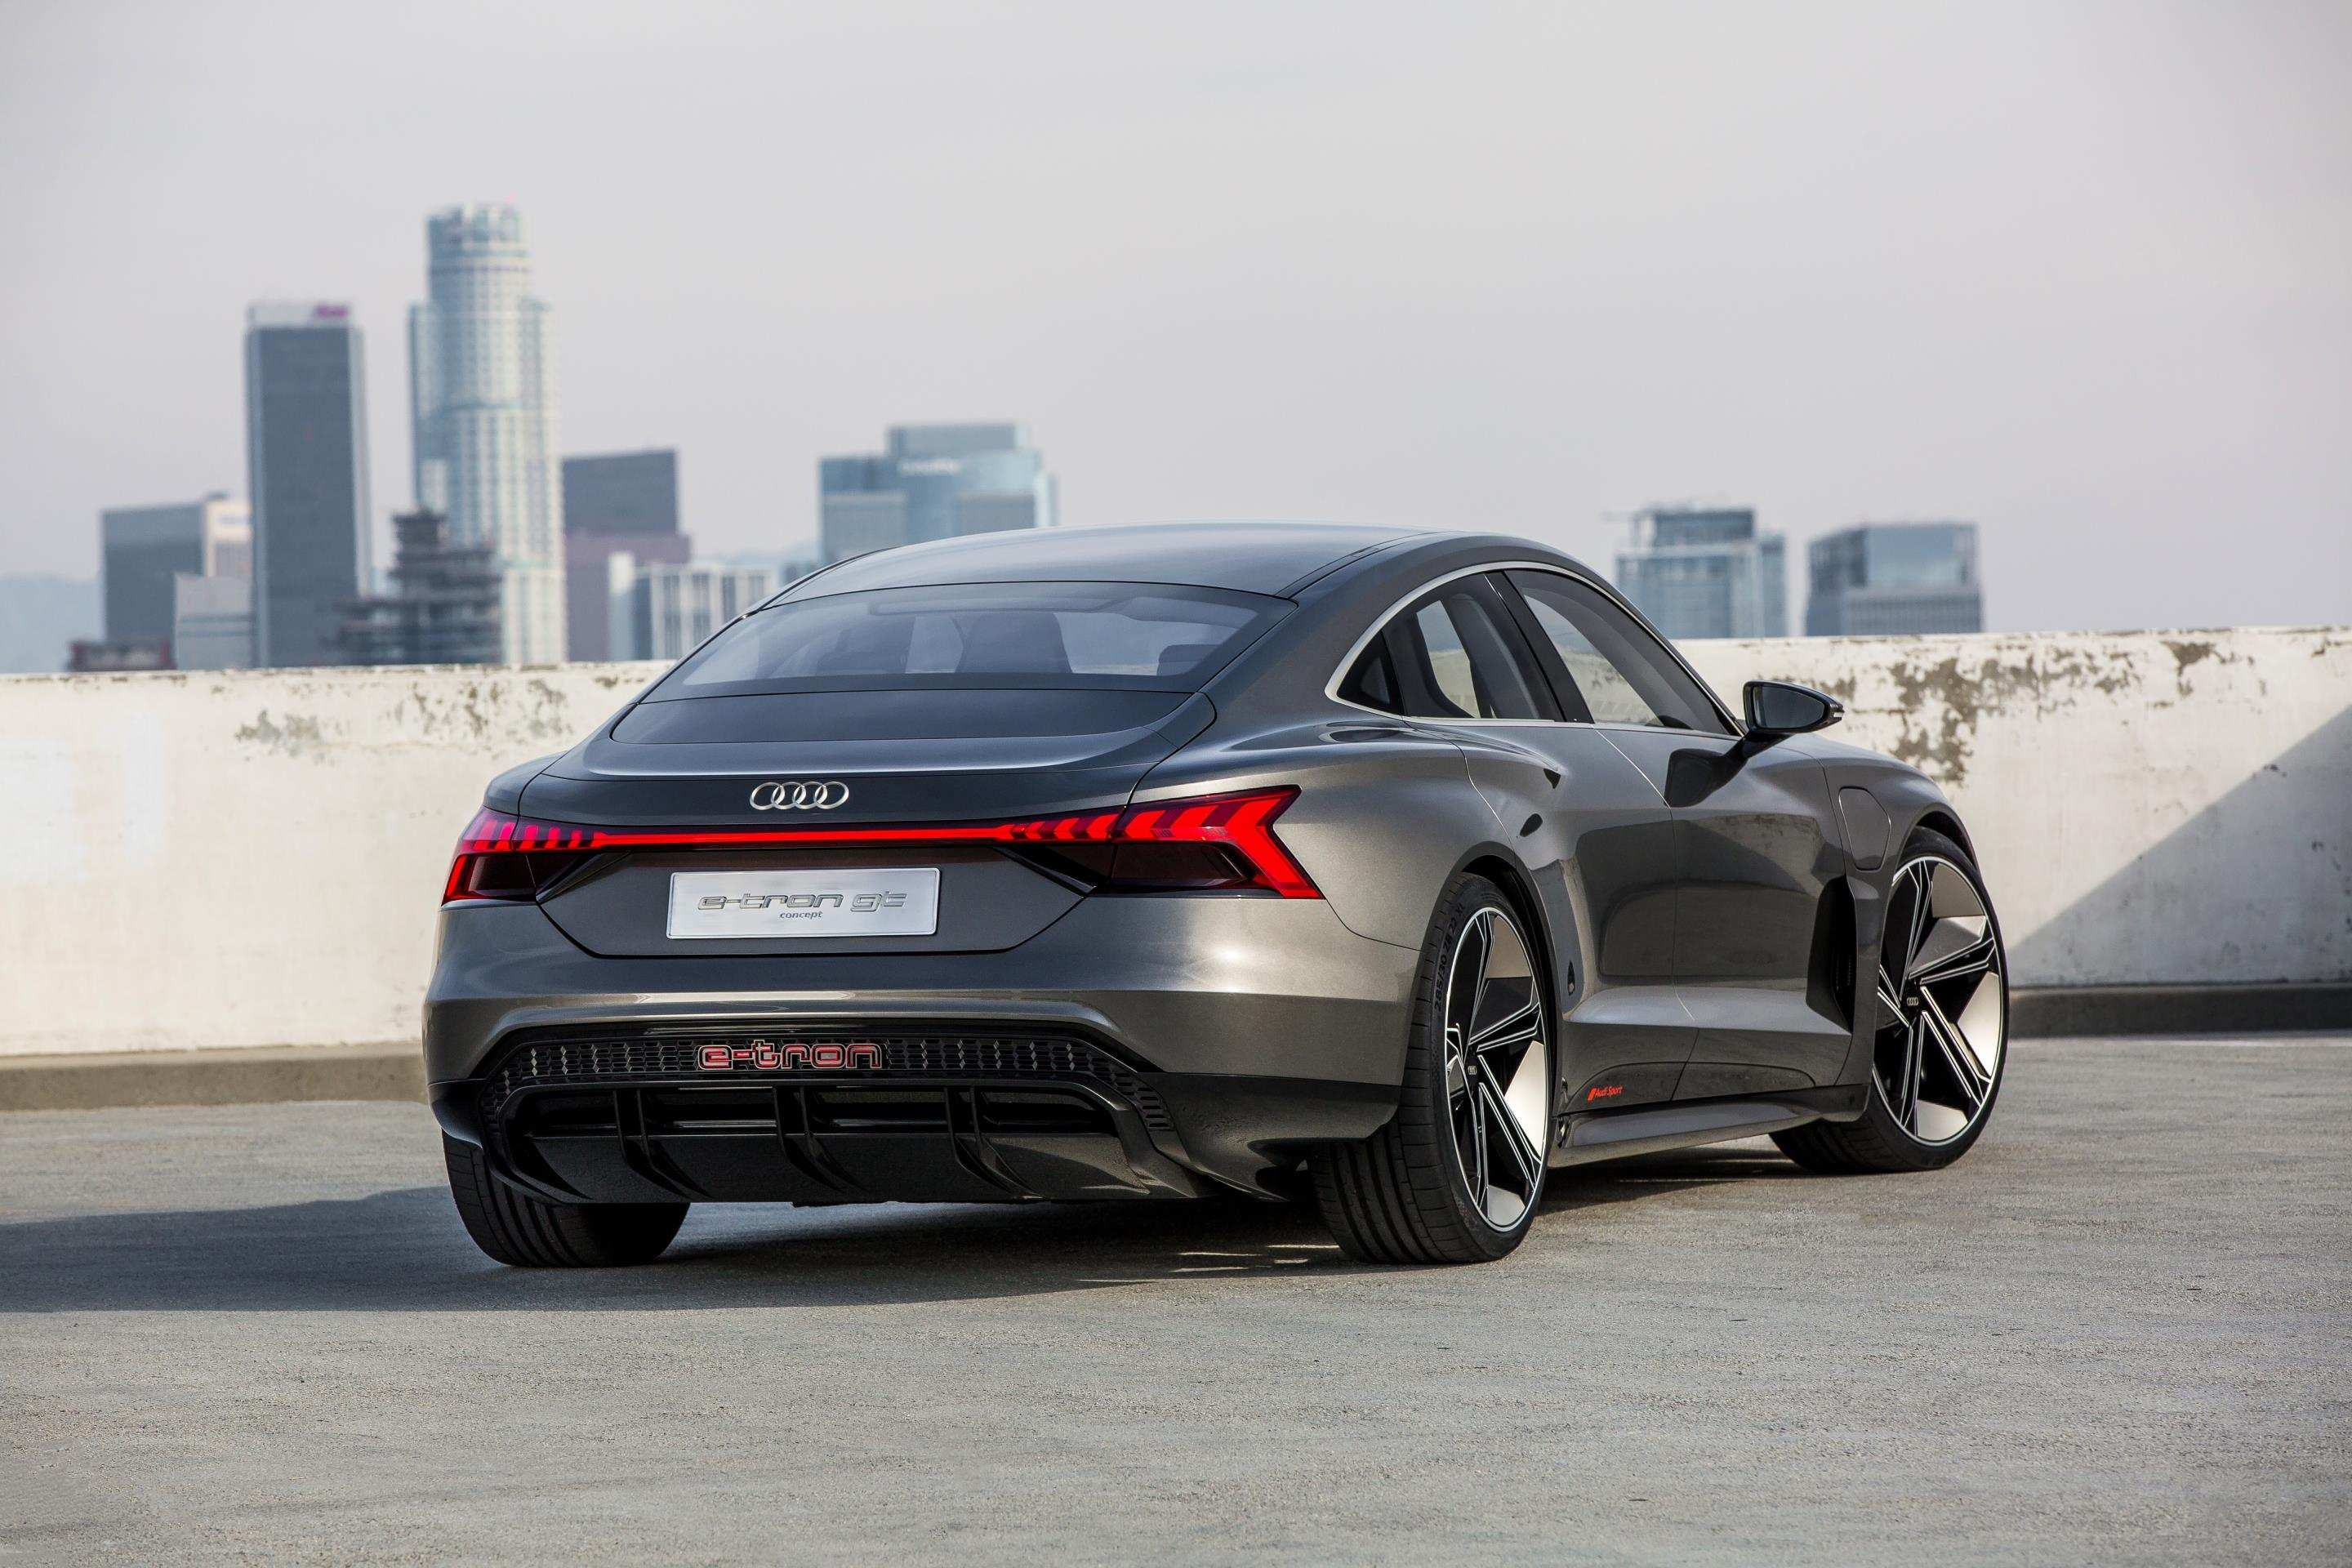 67 Great 2020 Audi E Tron Gt Exterior and Interior by 2020 Audi E Tron Gt